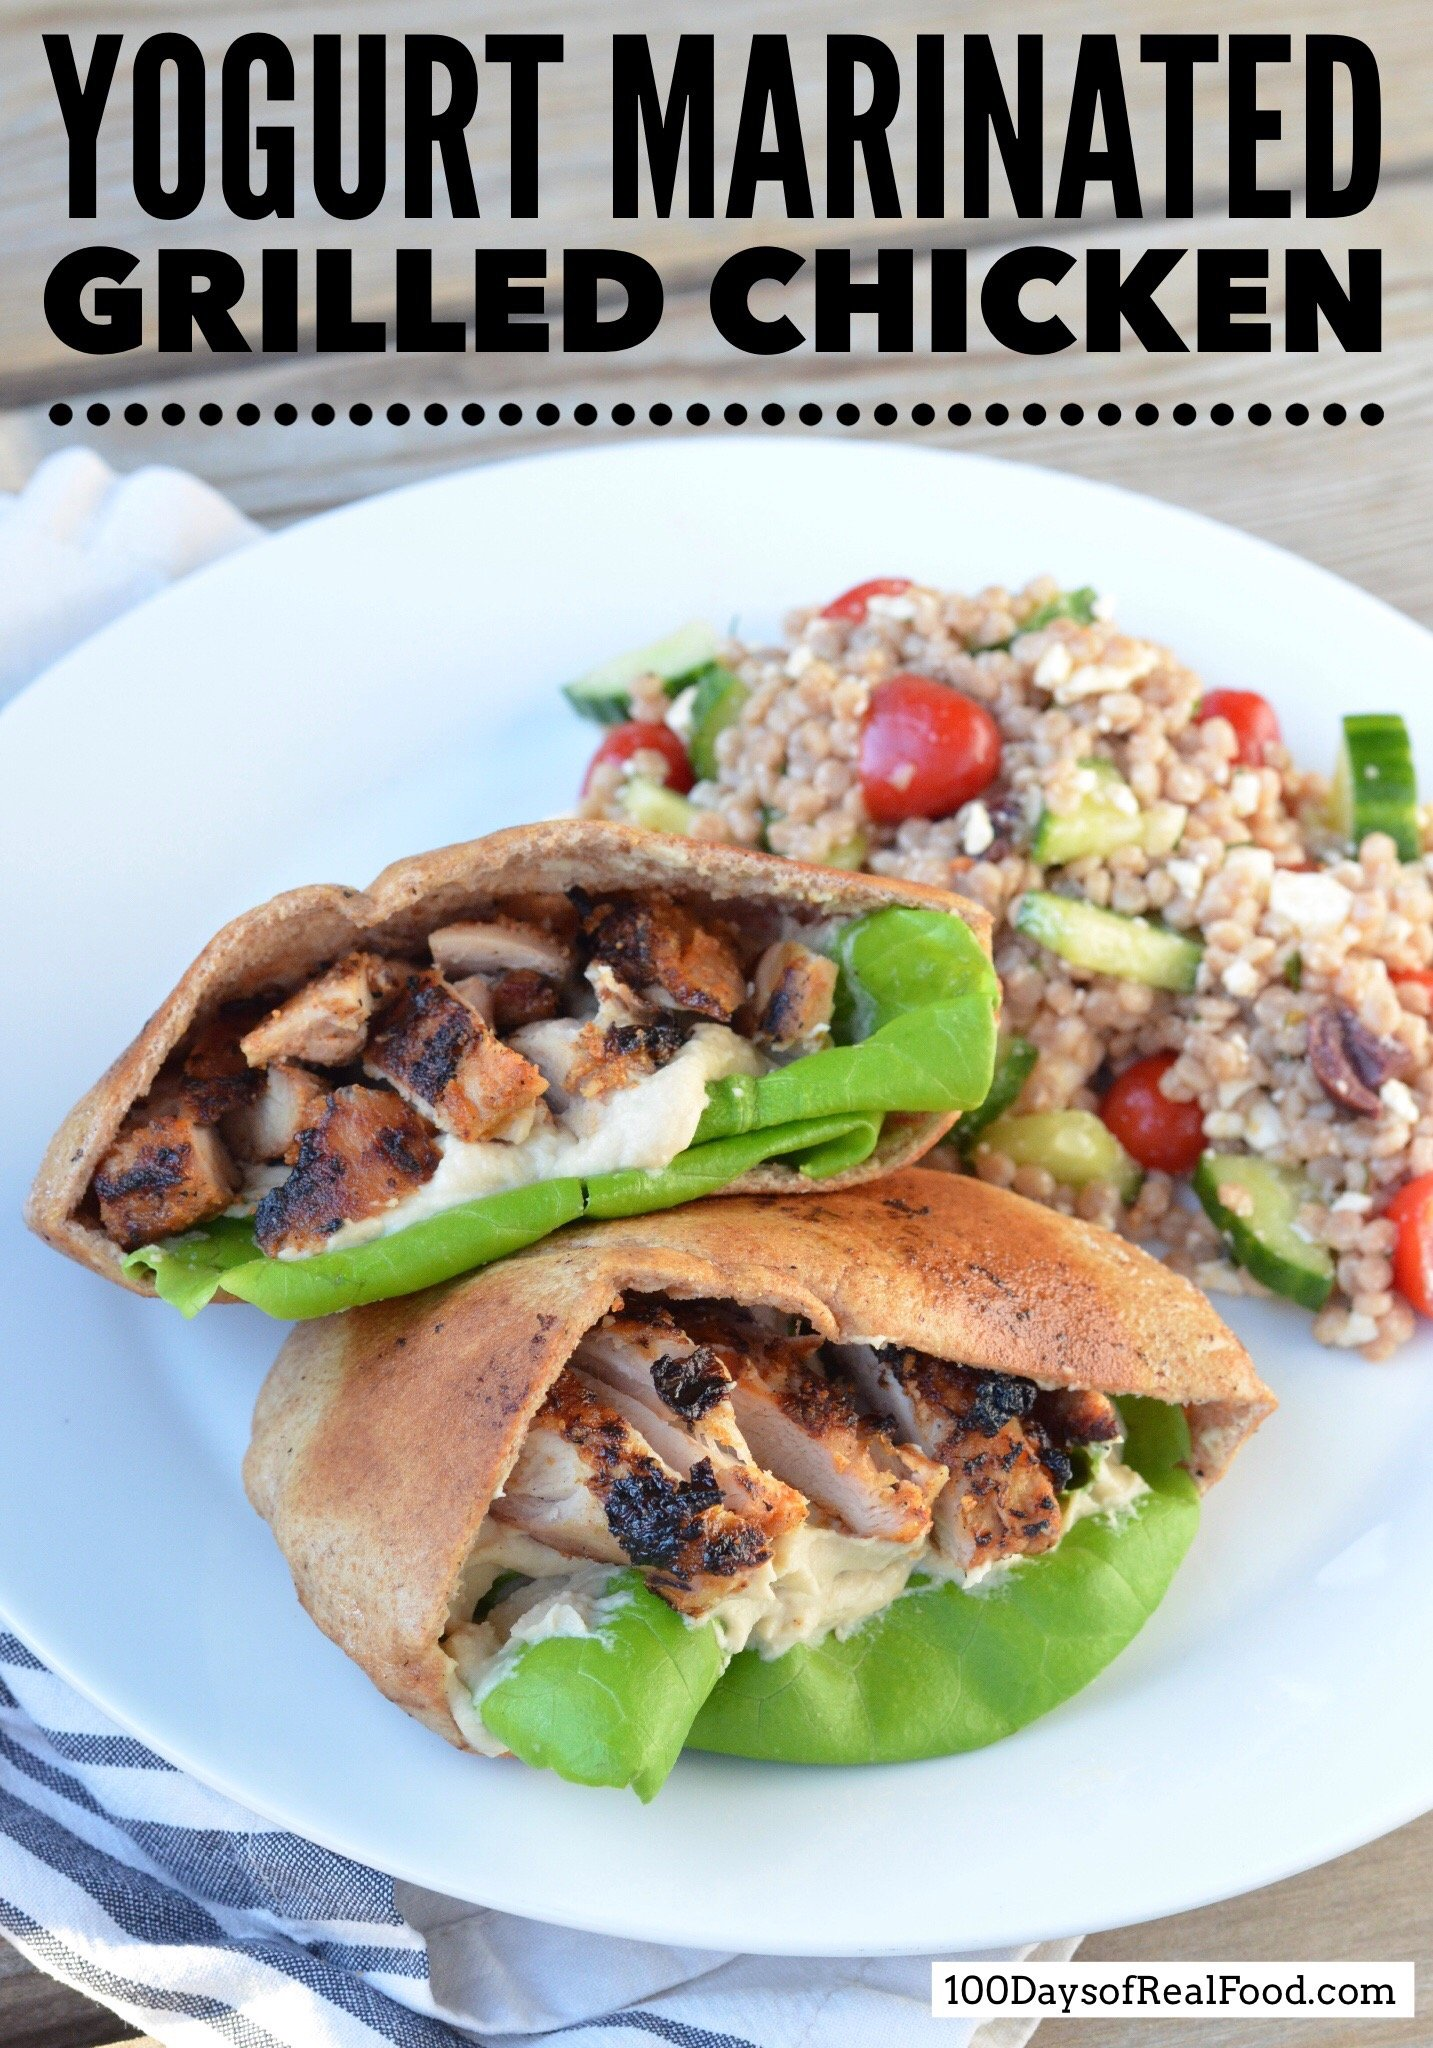 Yogurt Marinated Grilled Chicken on 100 Days of Real Food